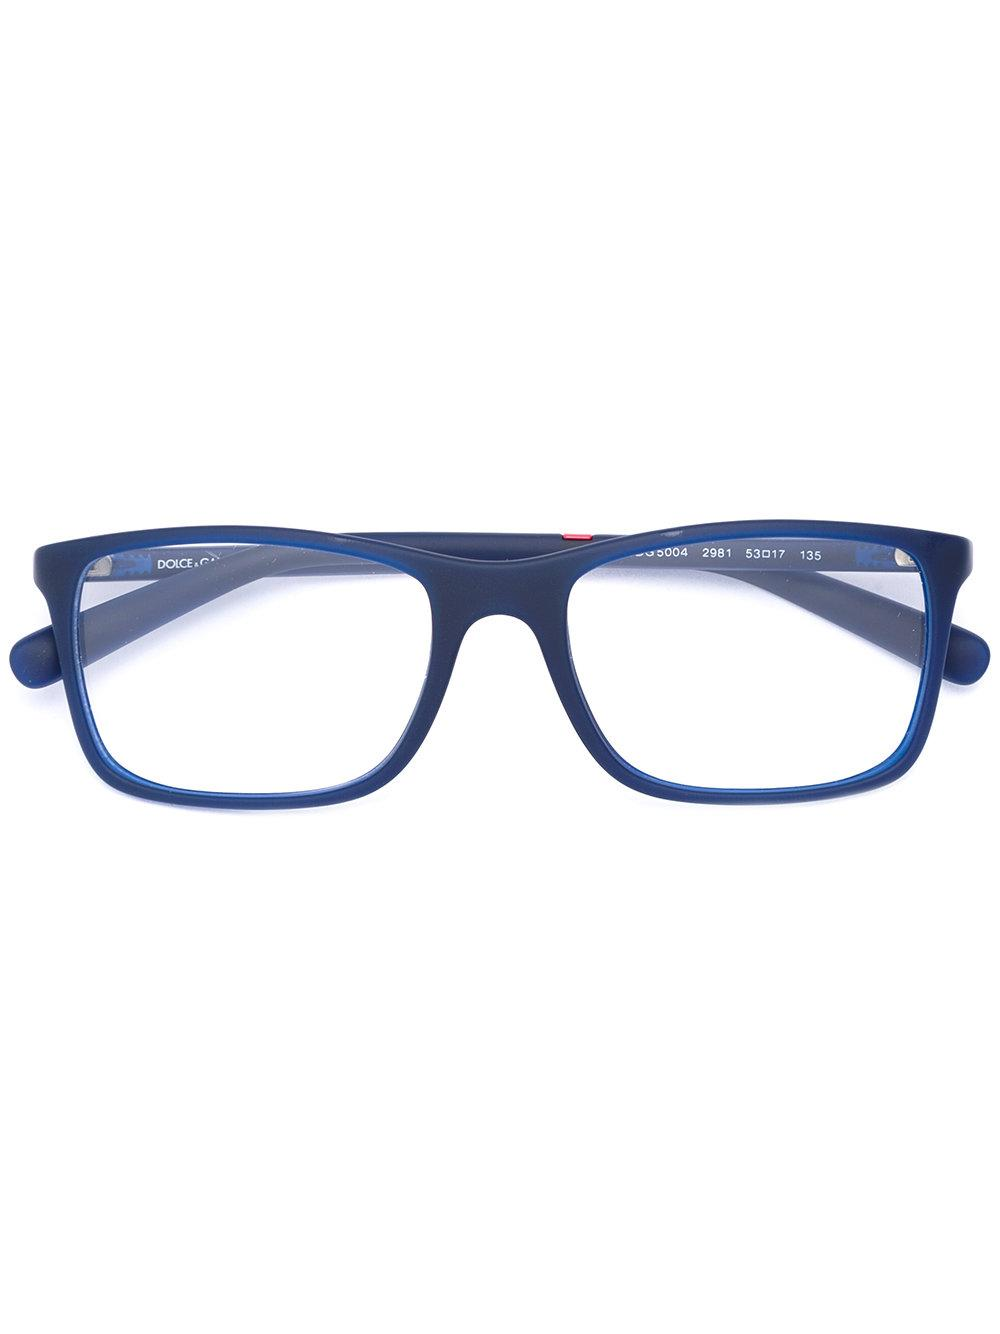 Dolce And Gabbana Mens Eyeglass Frames : Dolce & gabbana - Square Frame Glasses - Men - Rubber - 53 ...